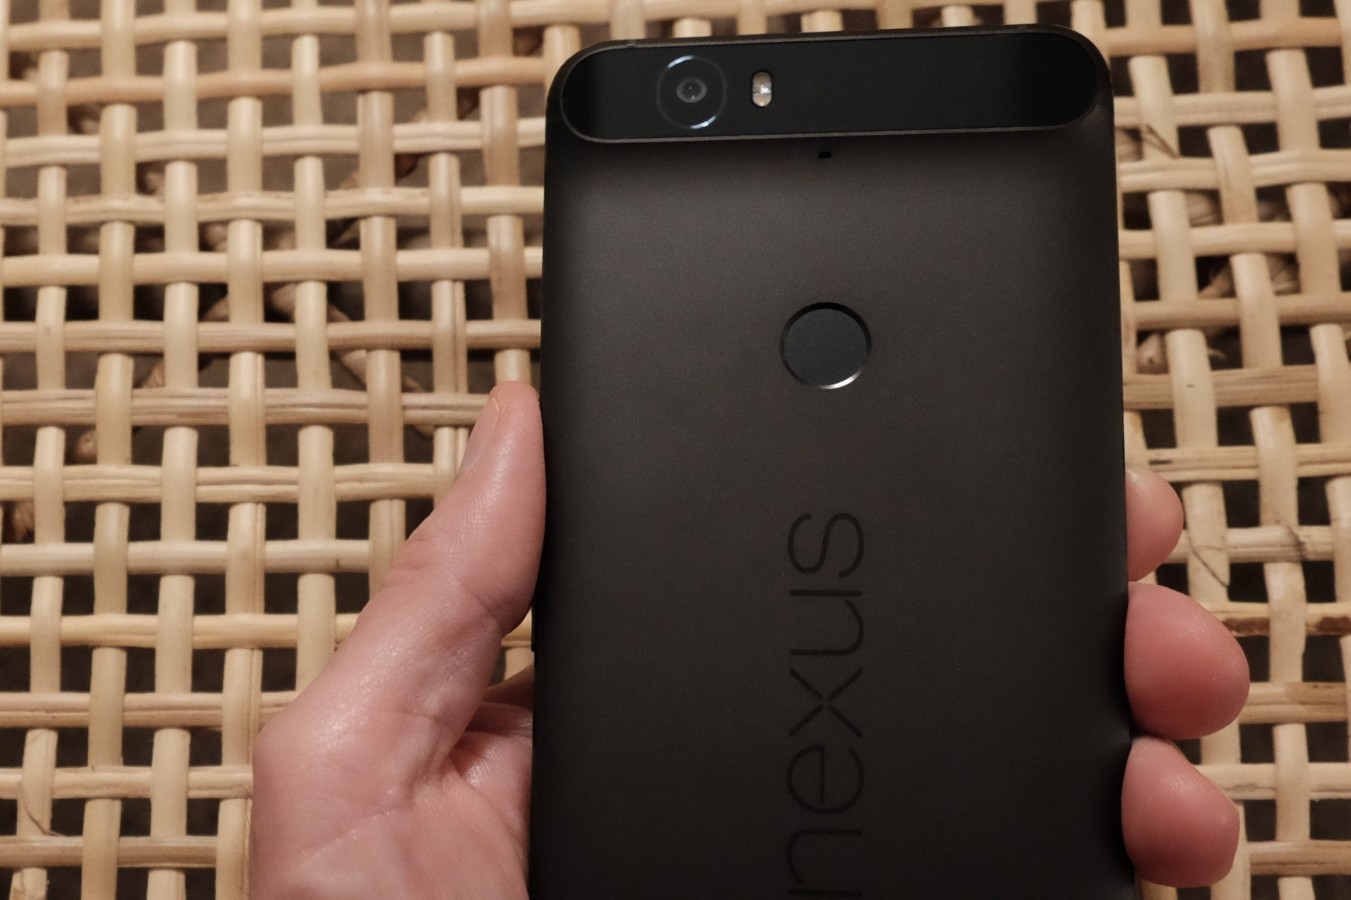 Nexus 6P Camera and Sensor